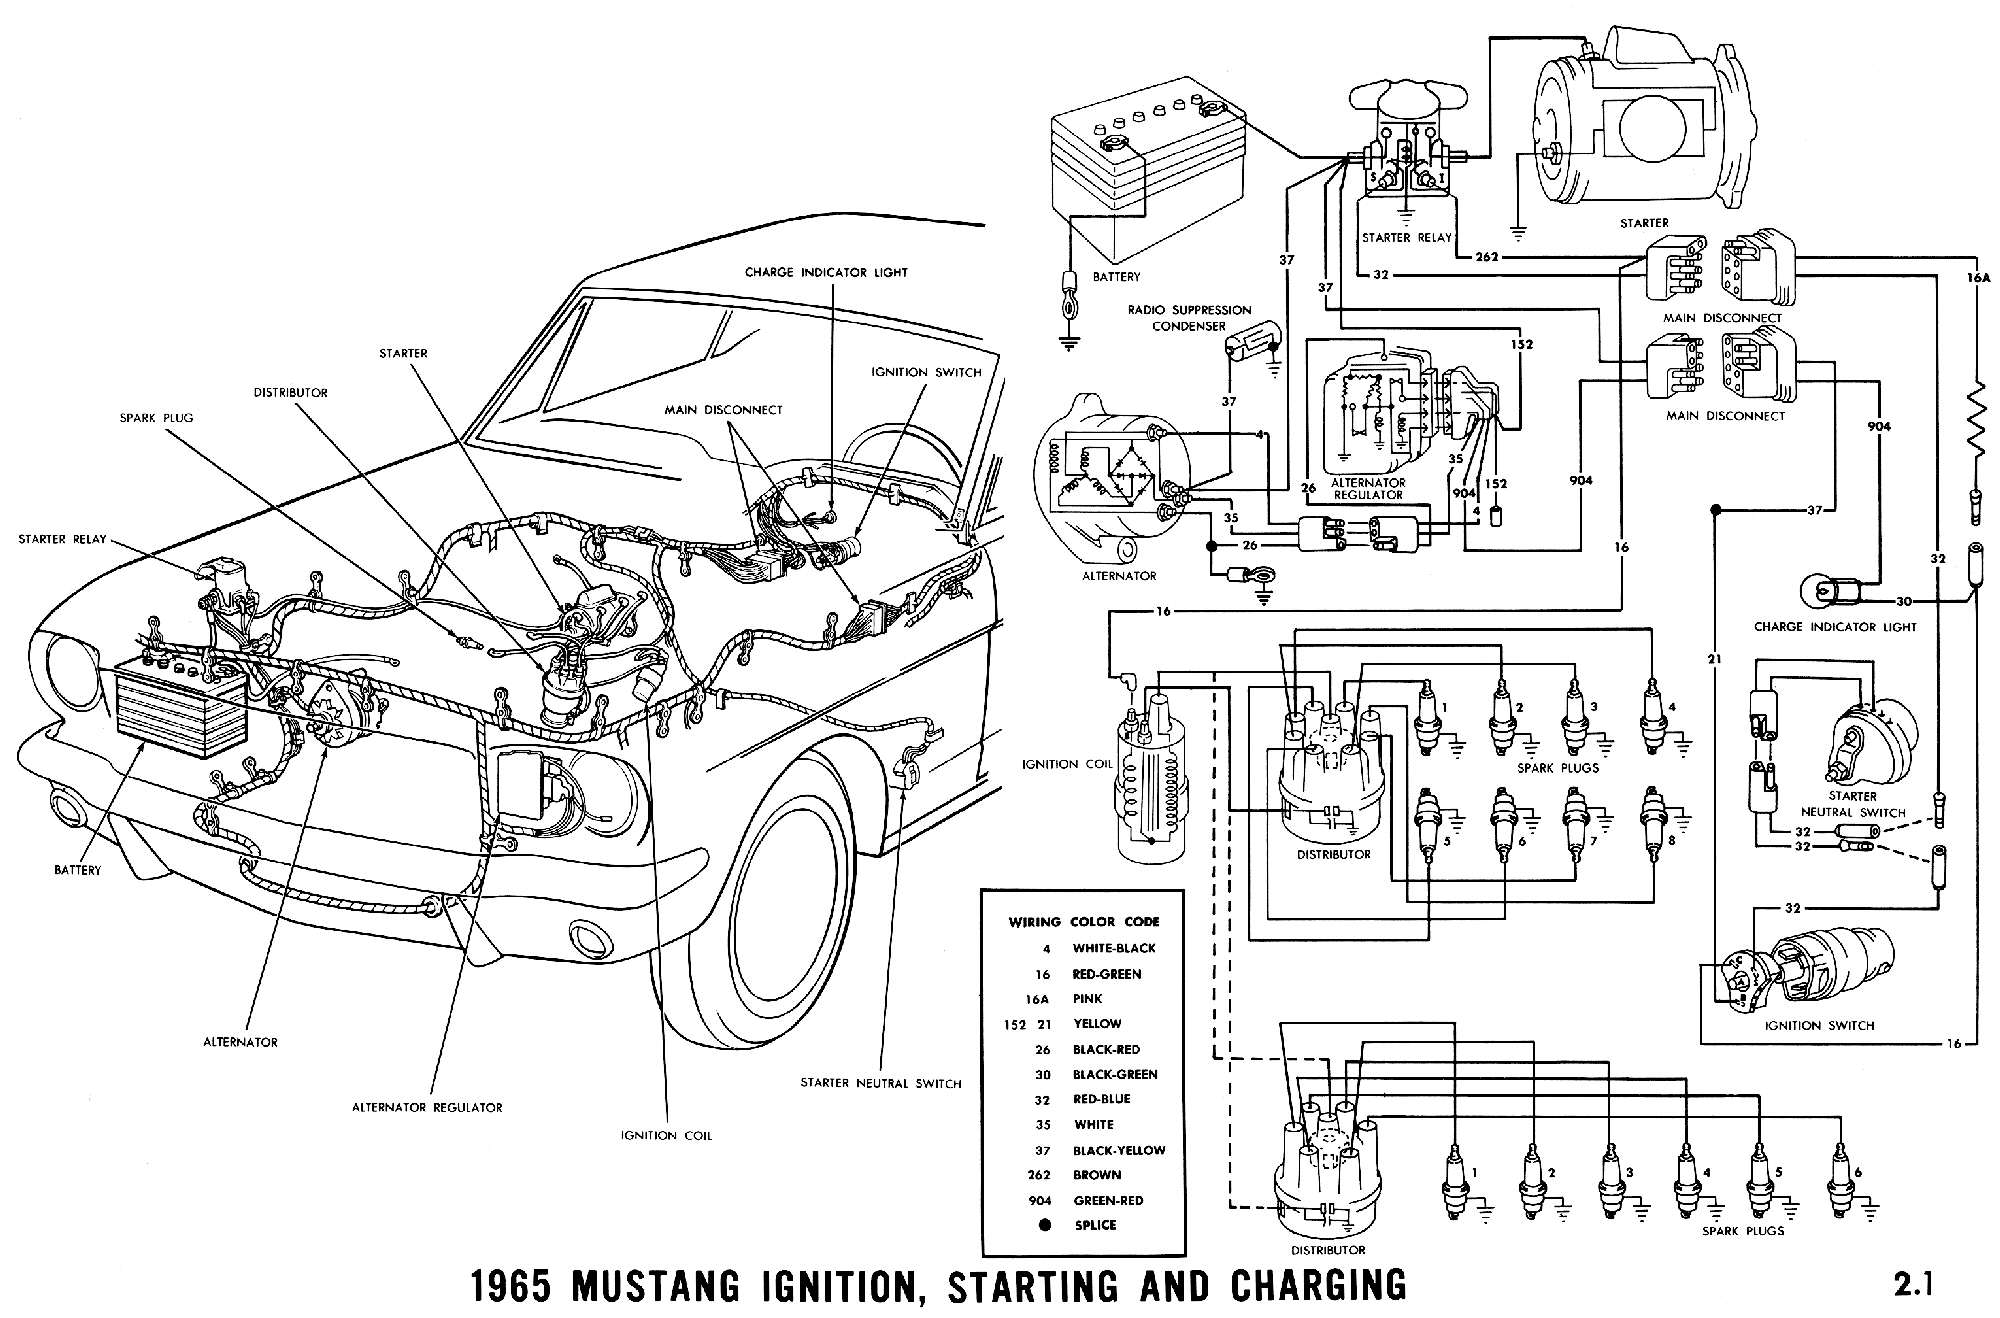 1965c 1965 mustang wiring diagrams average joe restoration 2005 mustang gt ignition wiring diagram at gsmx.co